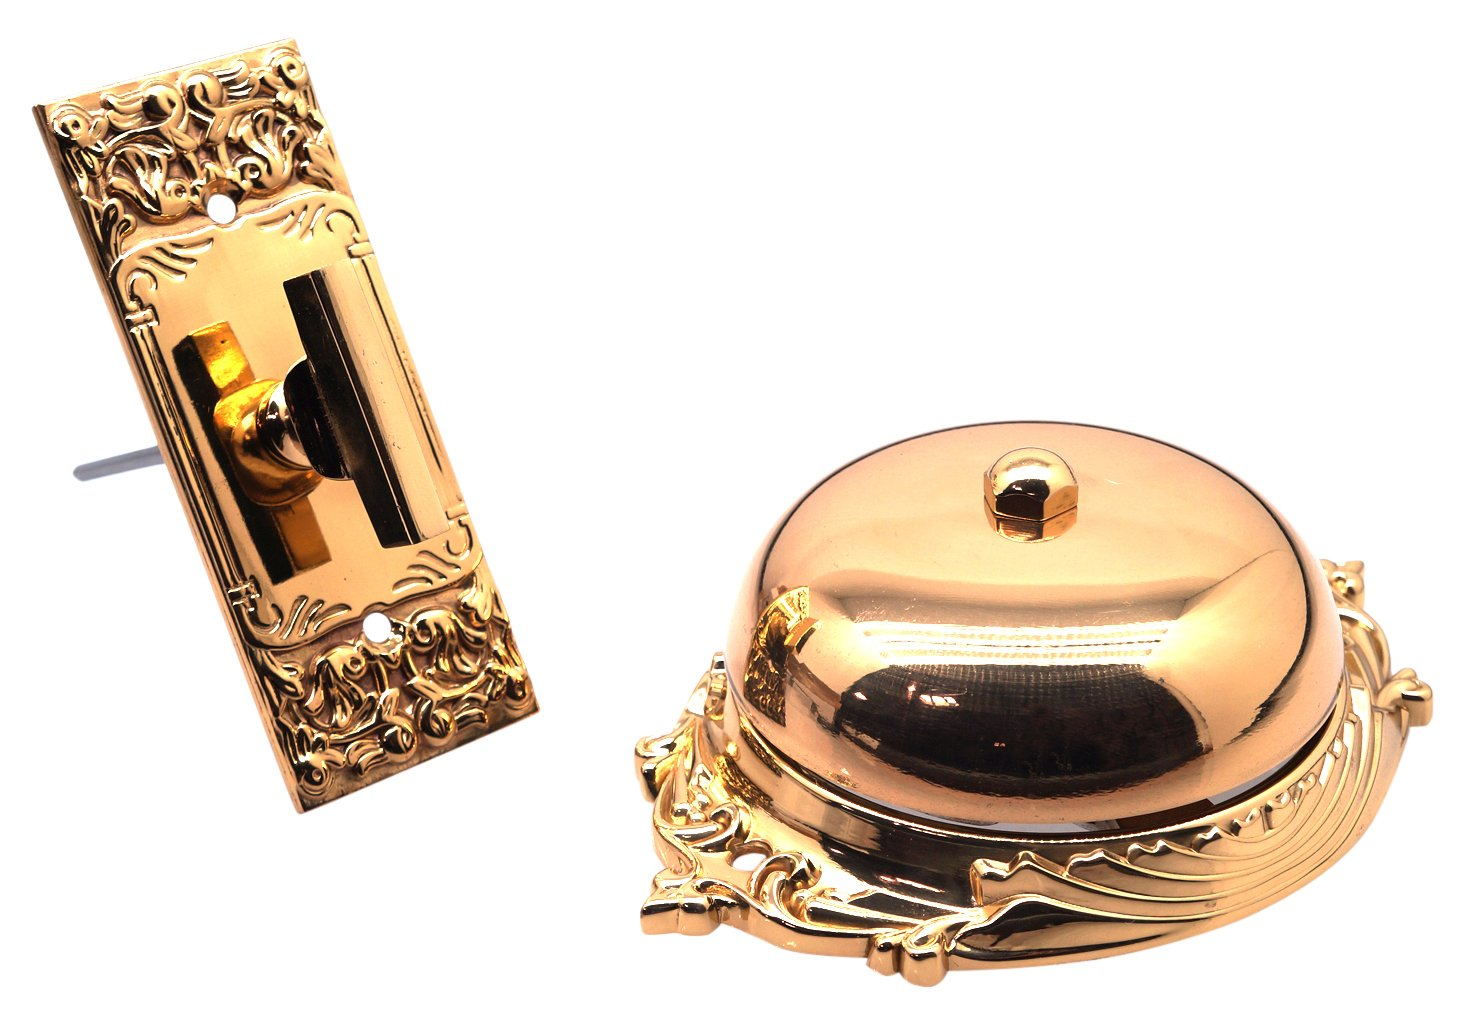 idh by St. Simons 18054-003 Craftsman Premium Quality Solid Brass Twist Bell with Key Plate, Polished